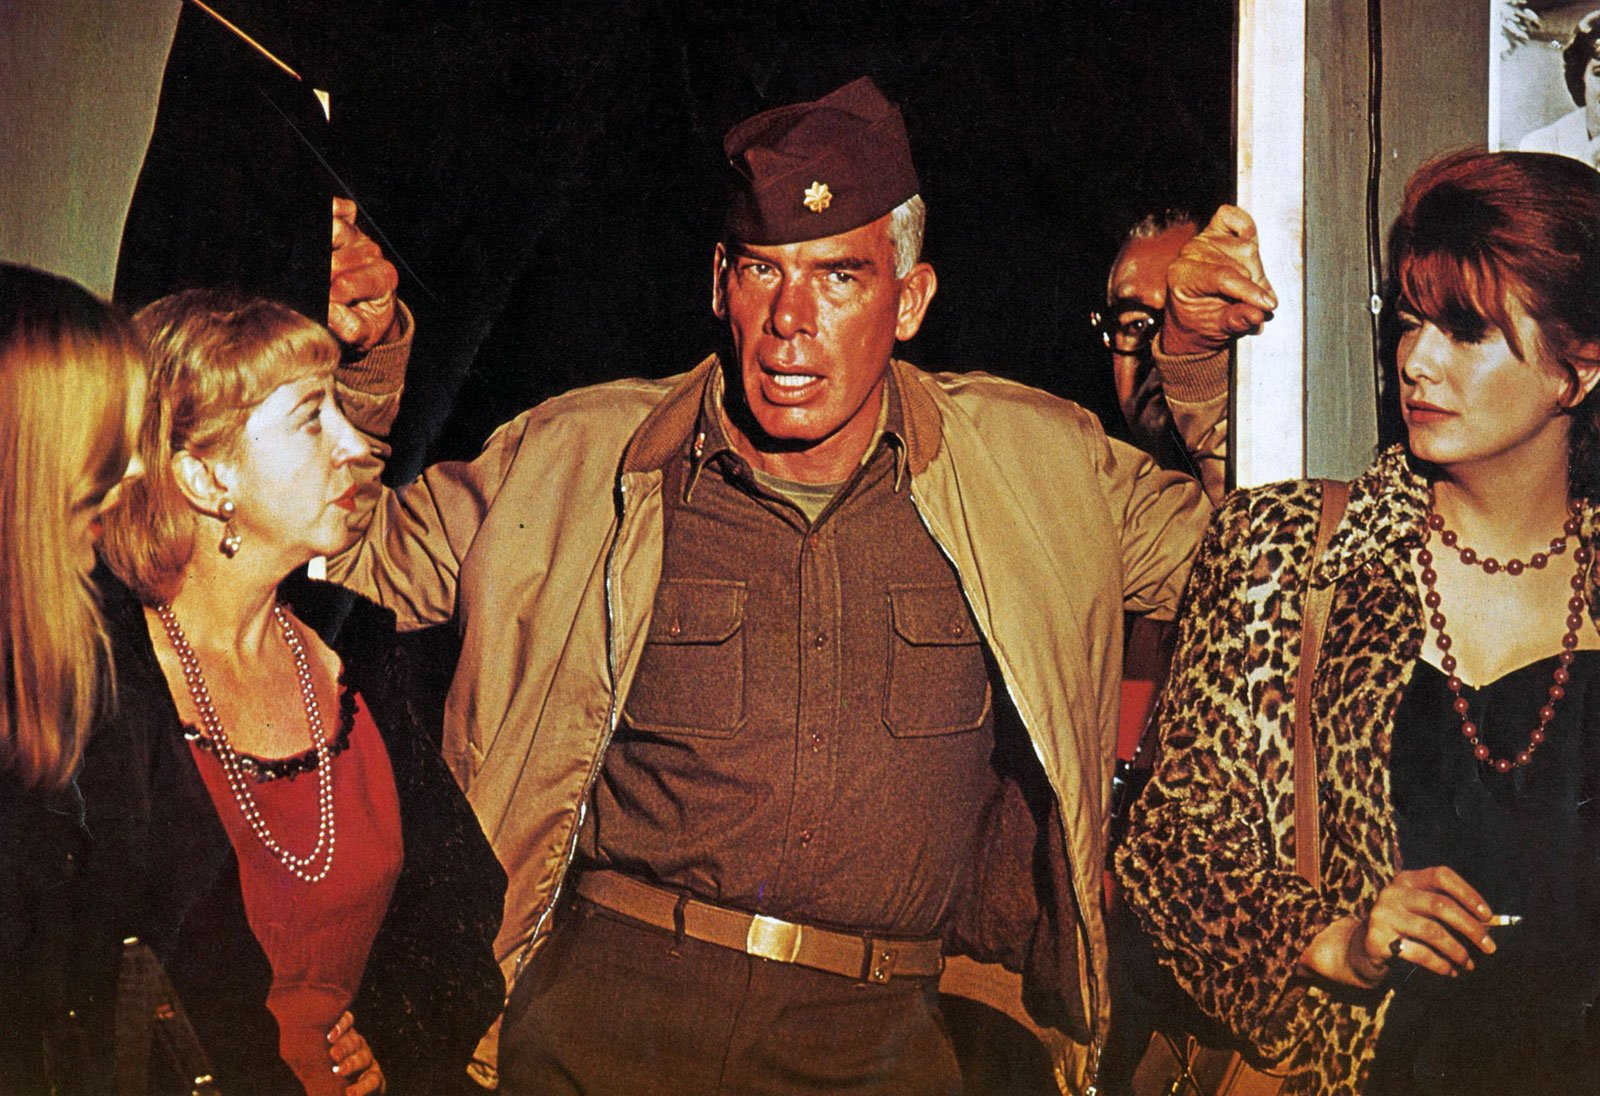 Lee Marvin The Dirty Dozen Robert Aldrich Blake's 7: 10 Things You Never Knew About The Classic Sci-Fi TV Show